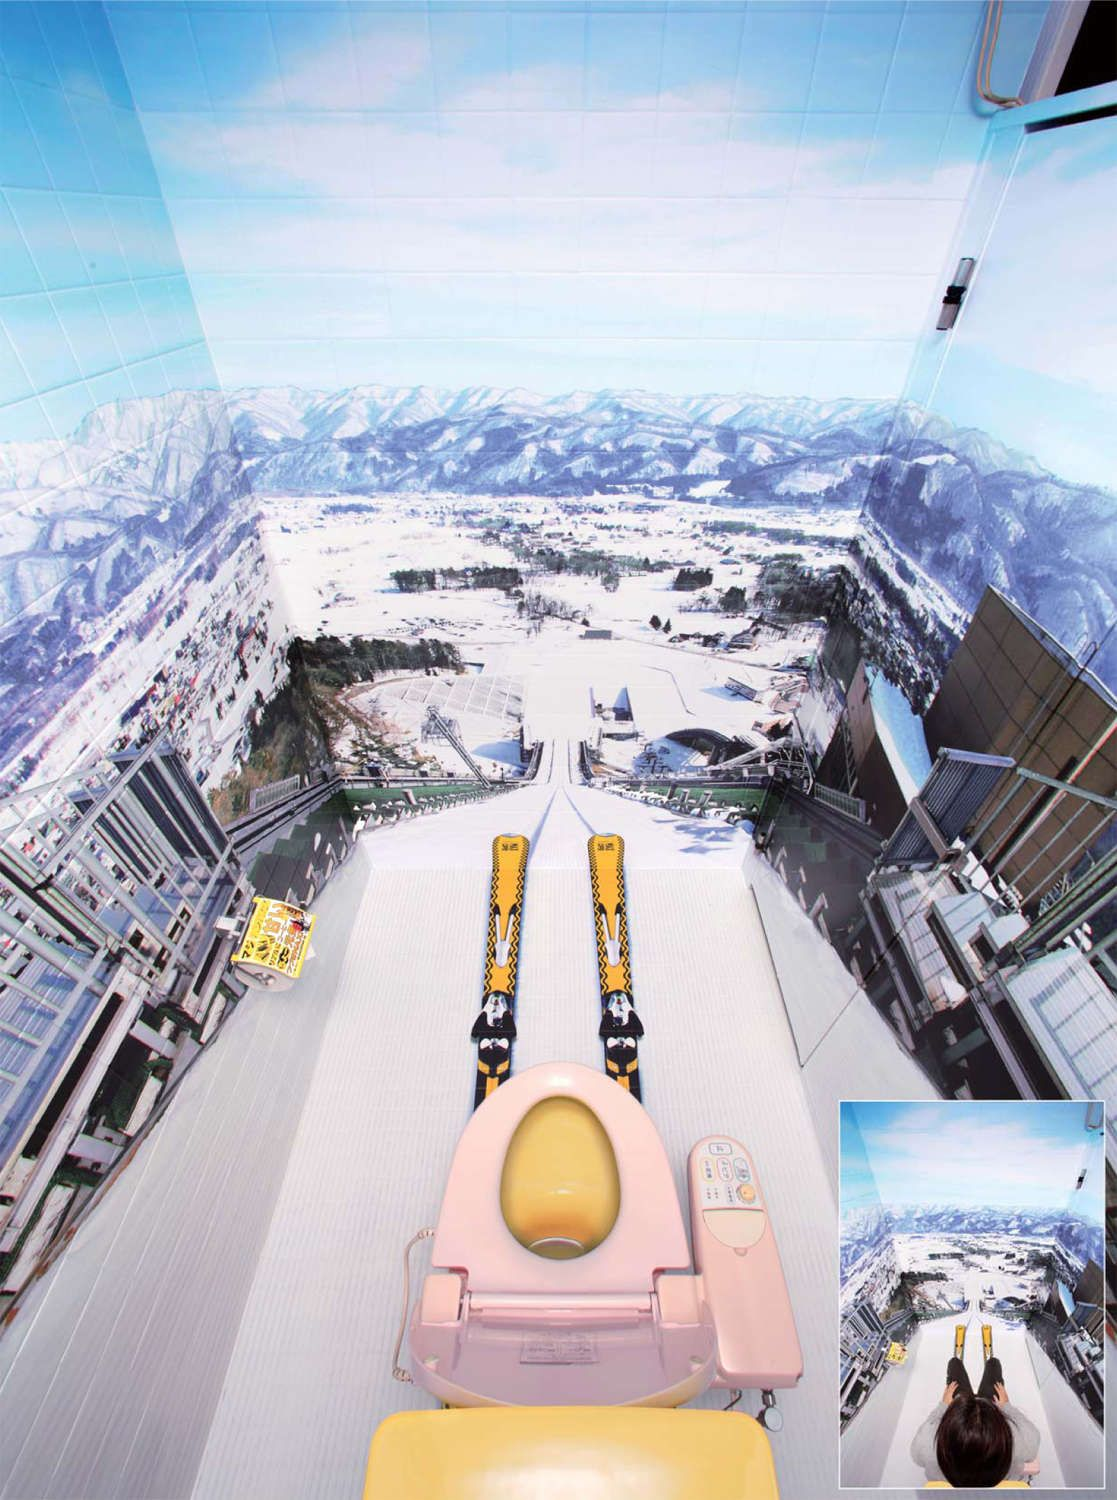 Coolest Bathroom Ever 10 Creative Bathroom Ads  Toilet Ski Jumping And Stuffing